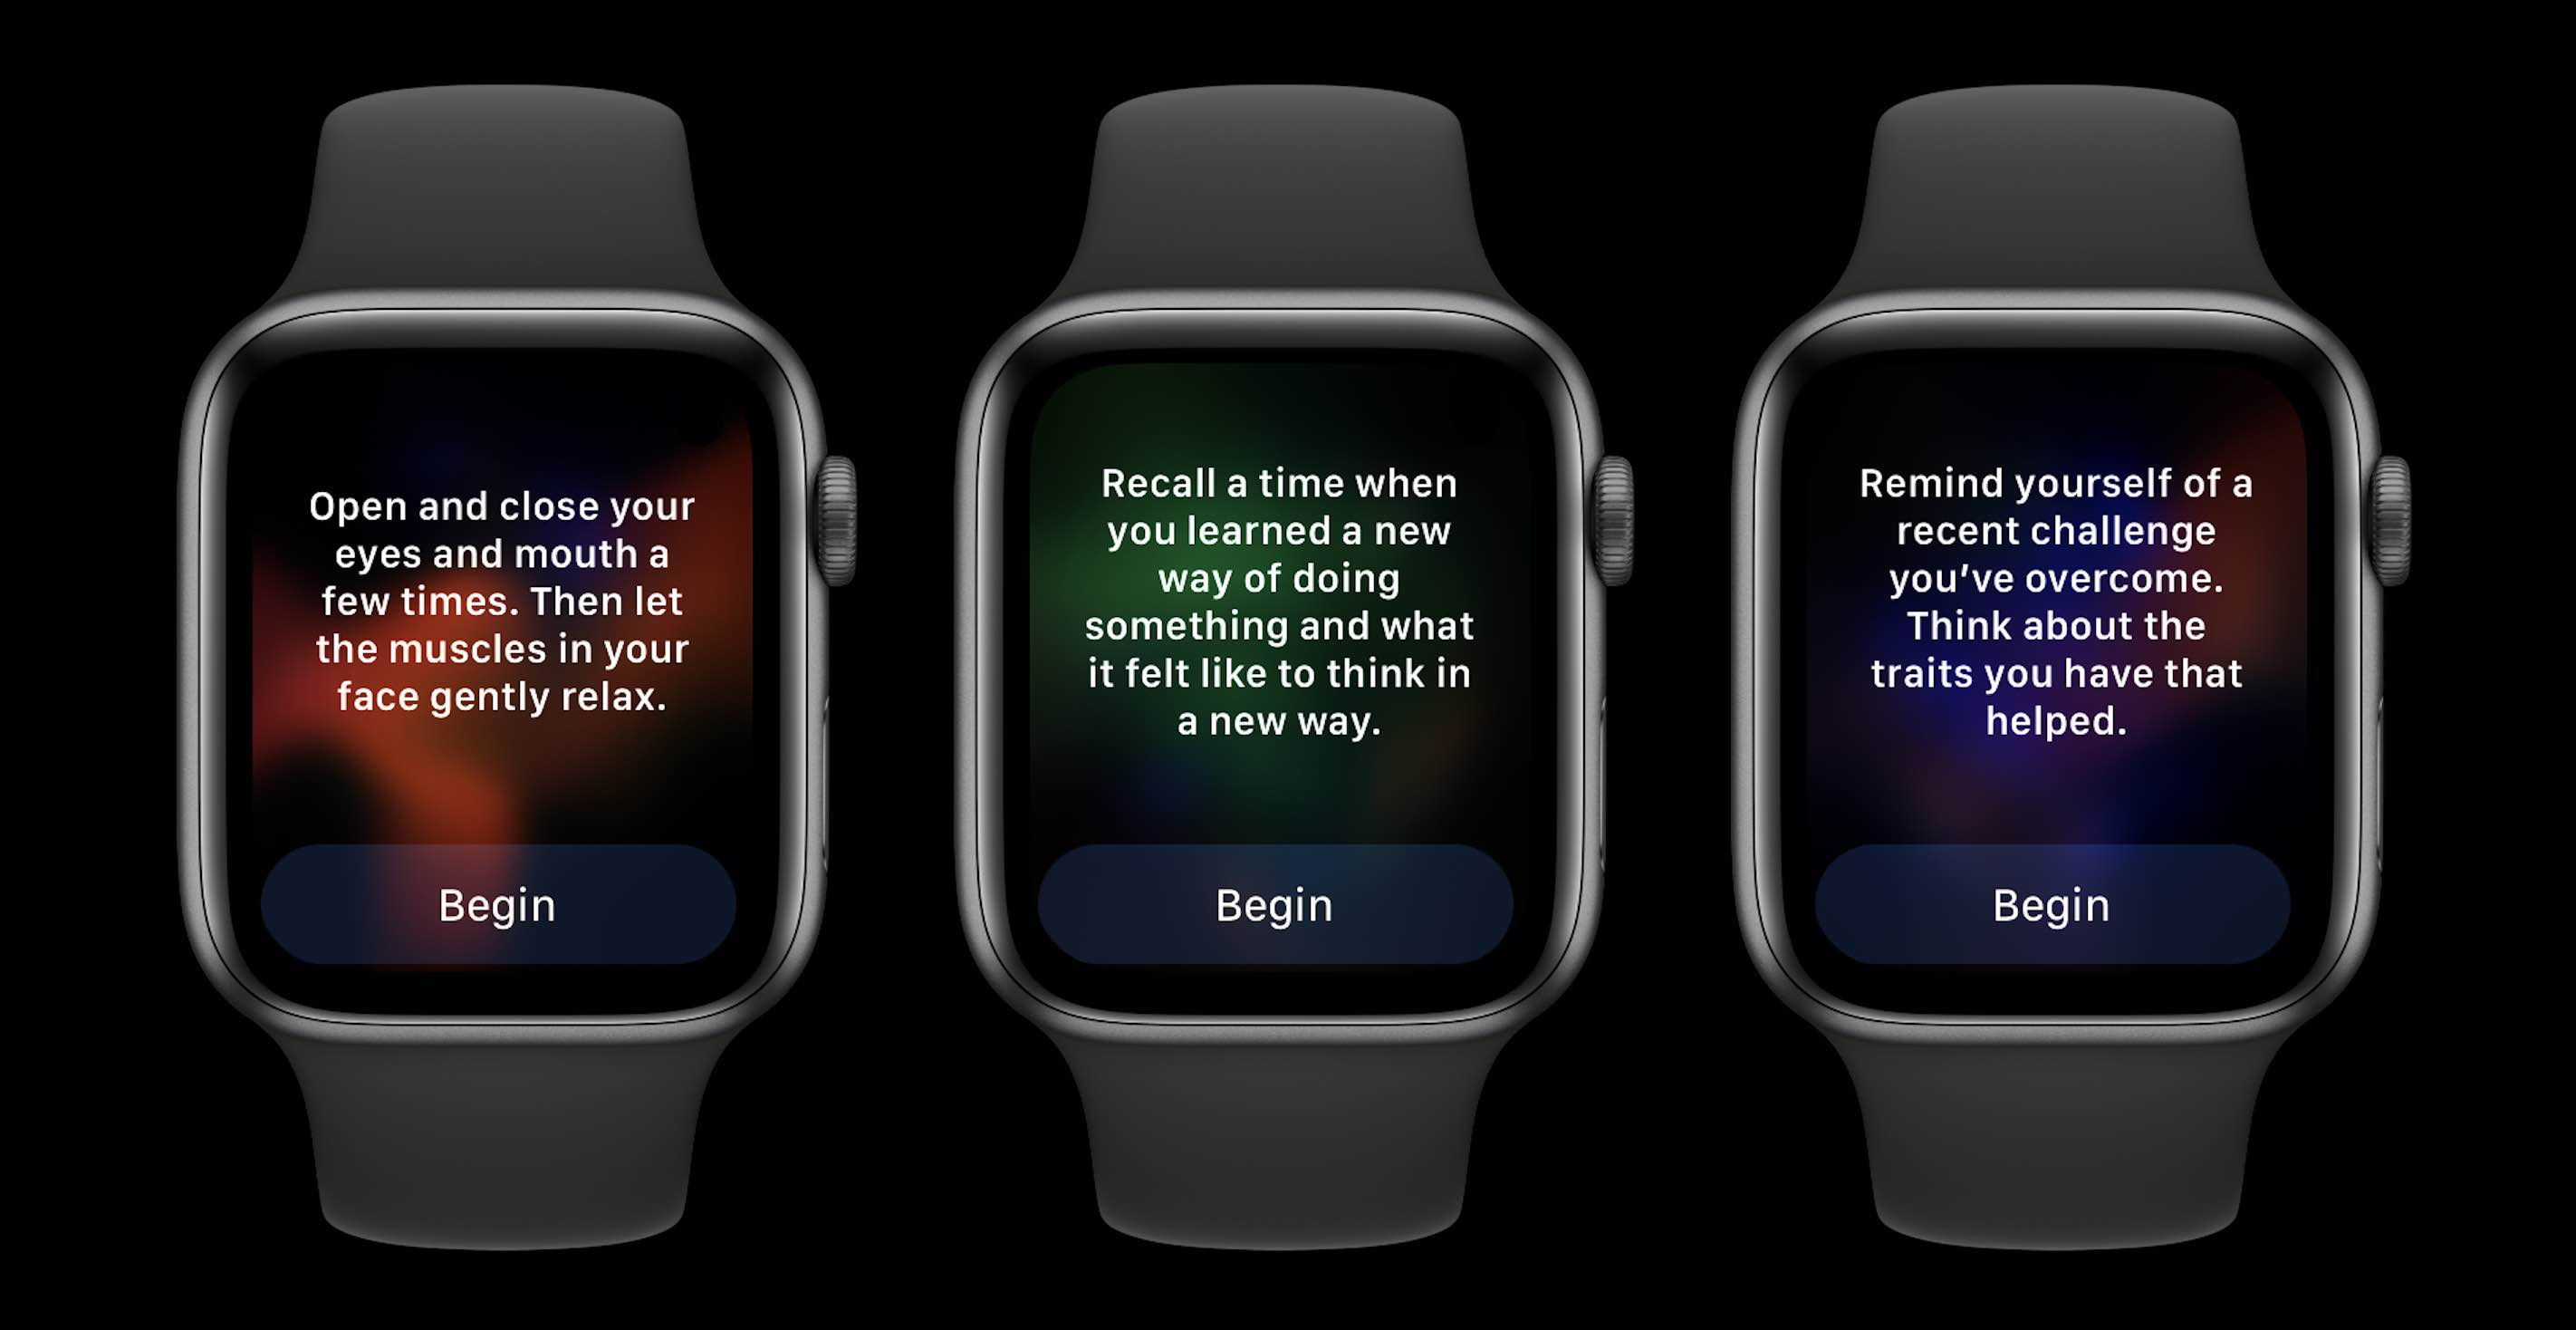 How to use Mindfulness app and Reflect watchOS 8 - walkthrough 3